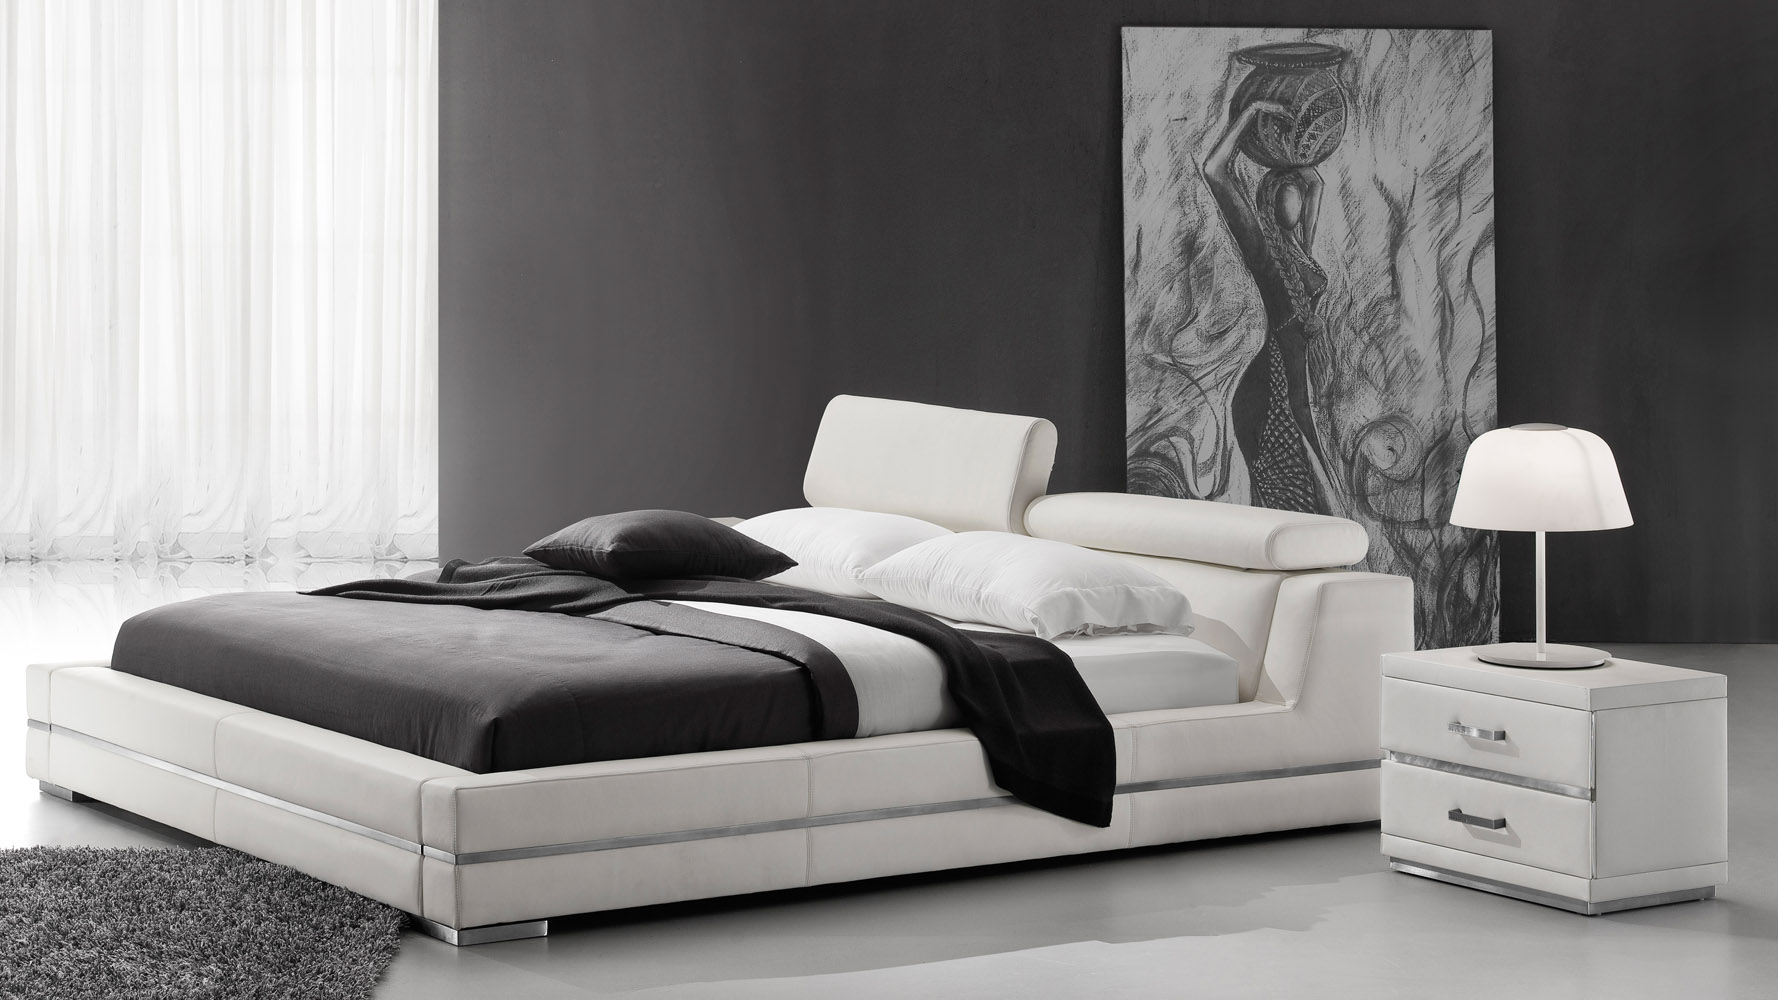 White leather beds designs 1 - White Leather Beds Designs 1 13